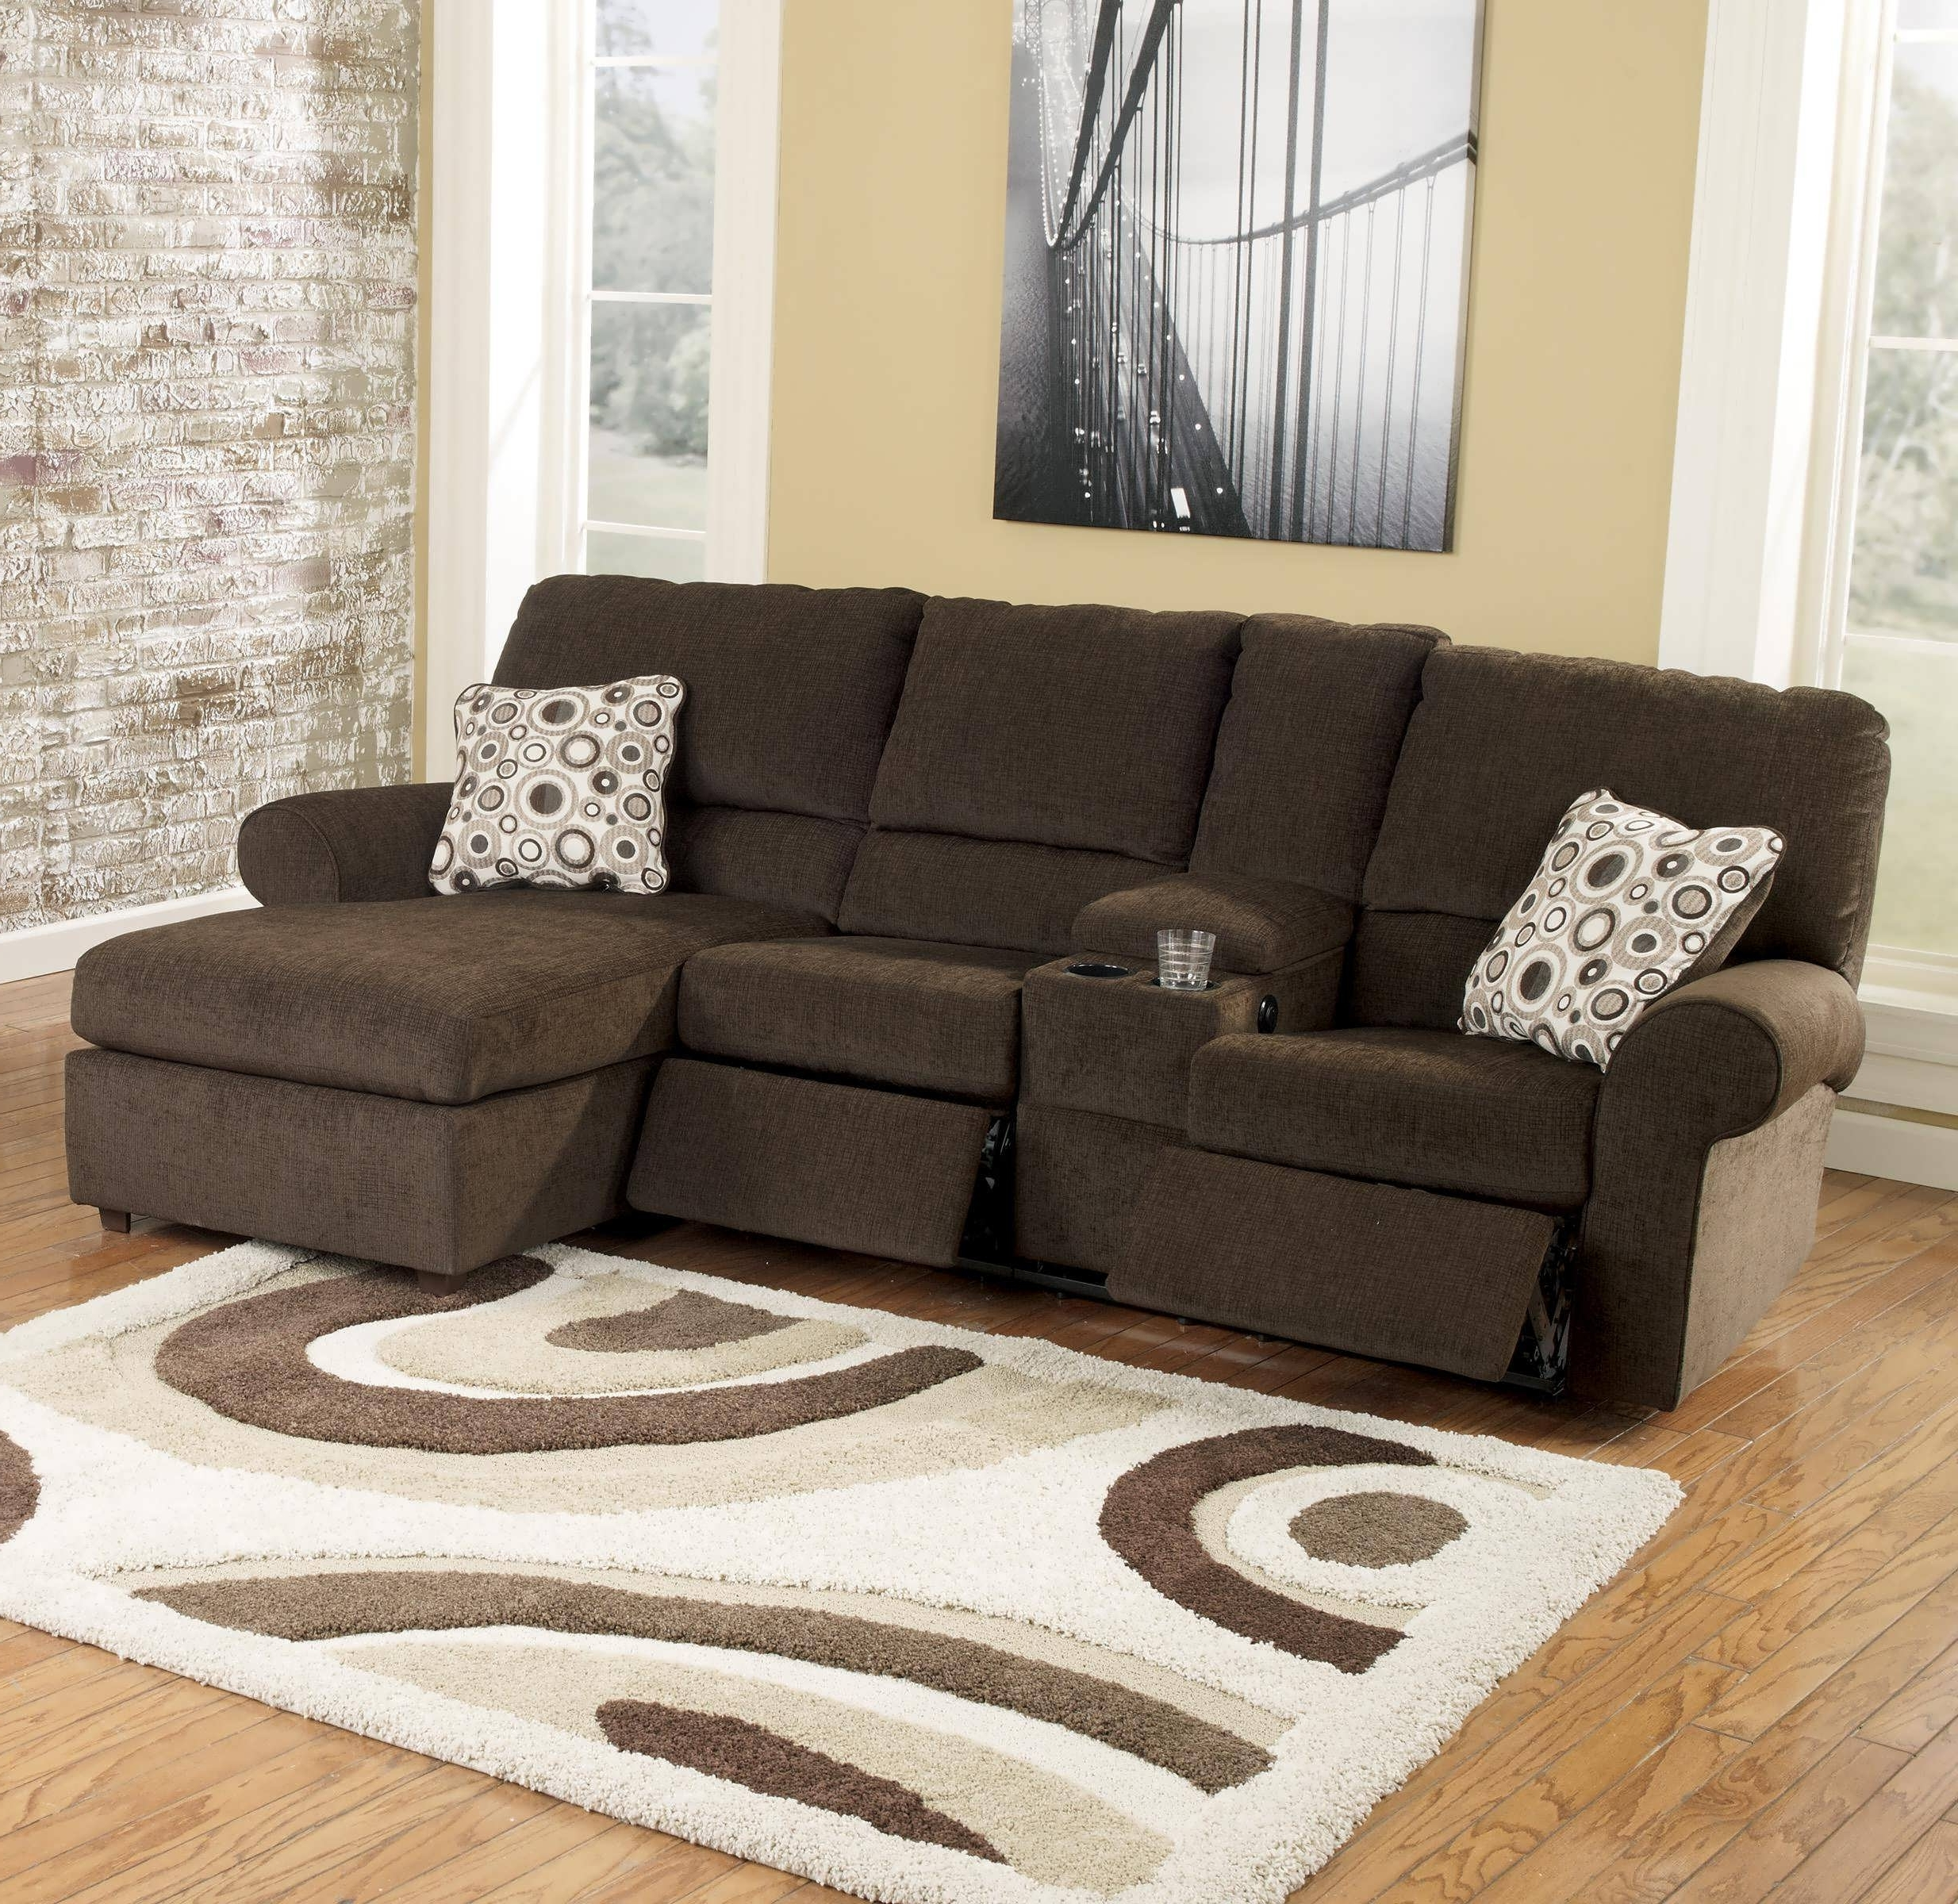 Sectionals With Chaise And Recliner Inside Widely Used Sofa : Leather Sectional Couch Double Chaise Sectional Leather L (View 10 of 15)